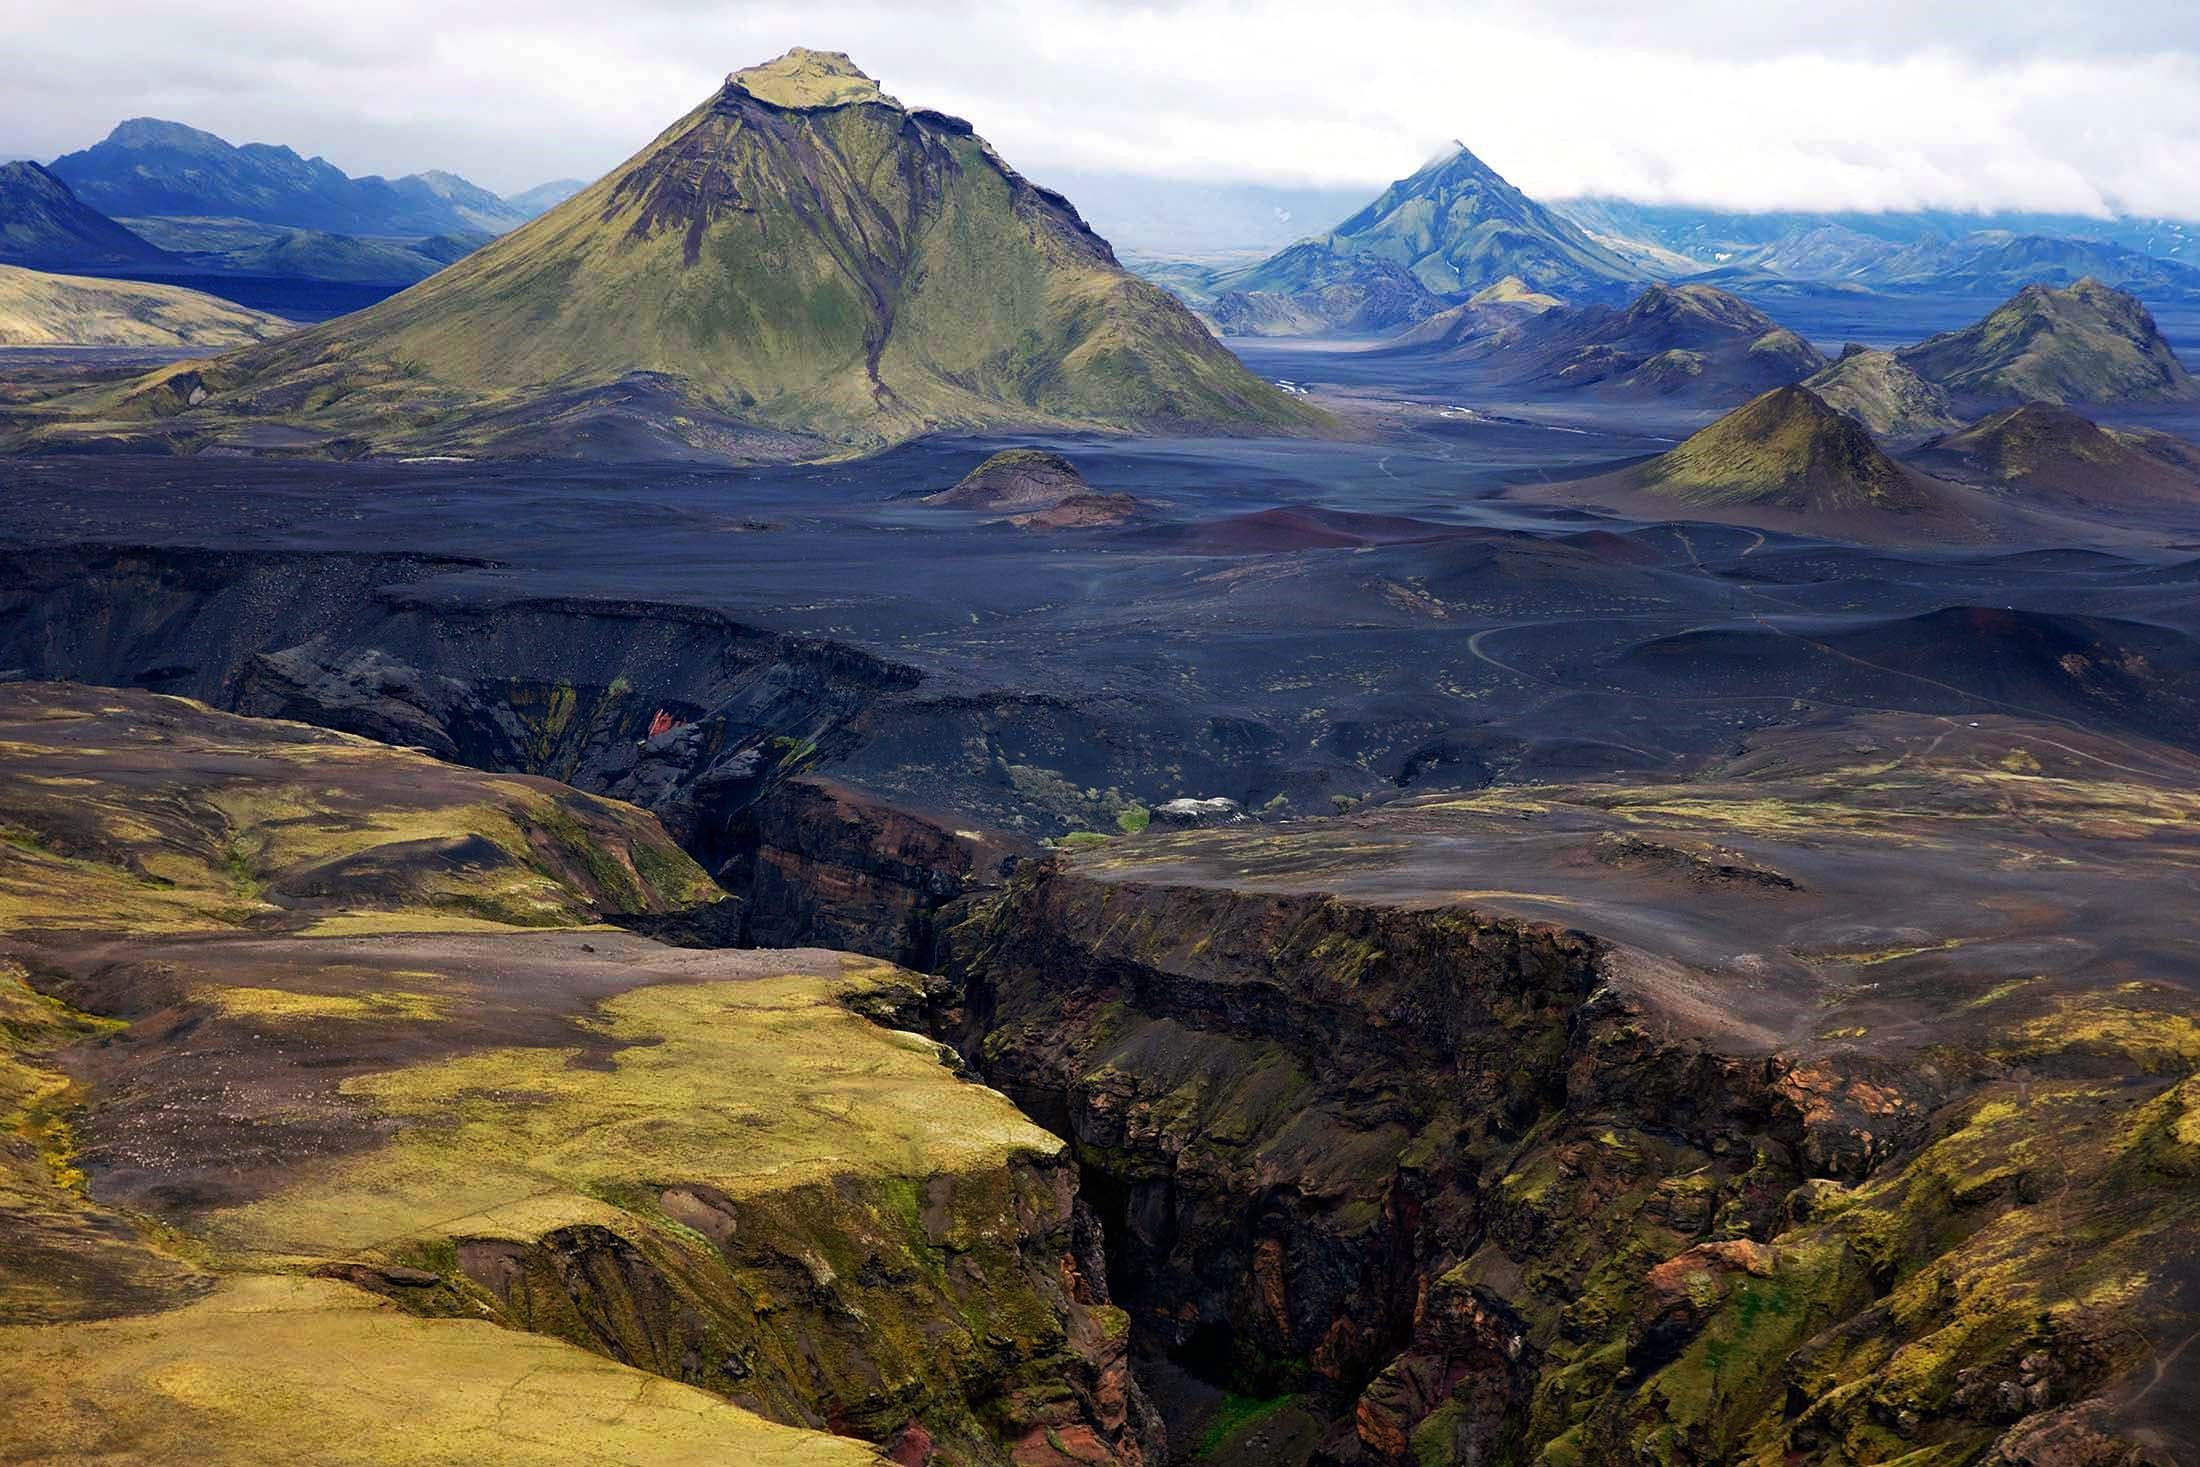 Iceland's landscapes include colossal glaciers and volcanoes